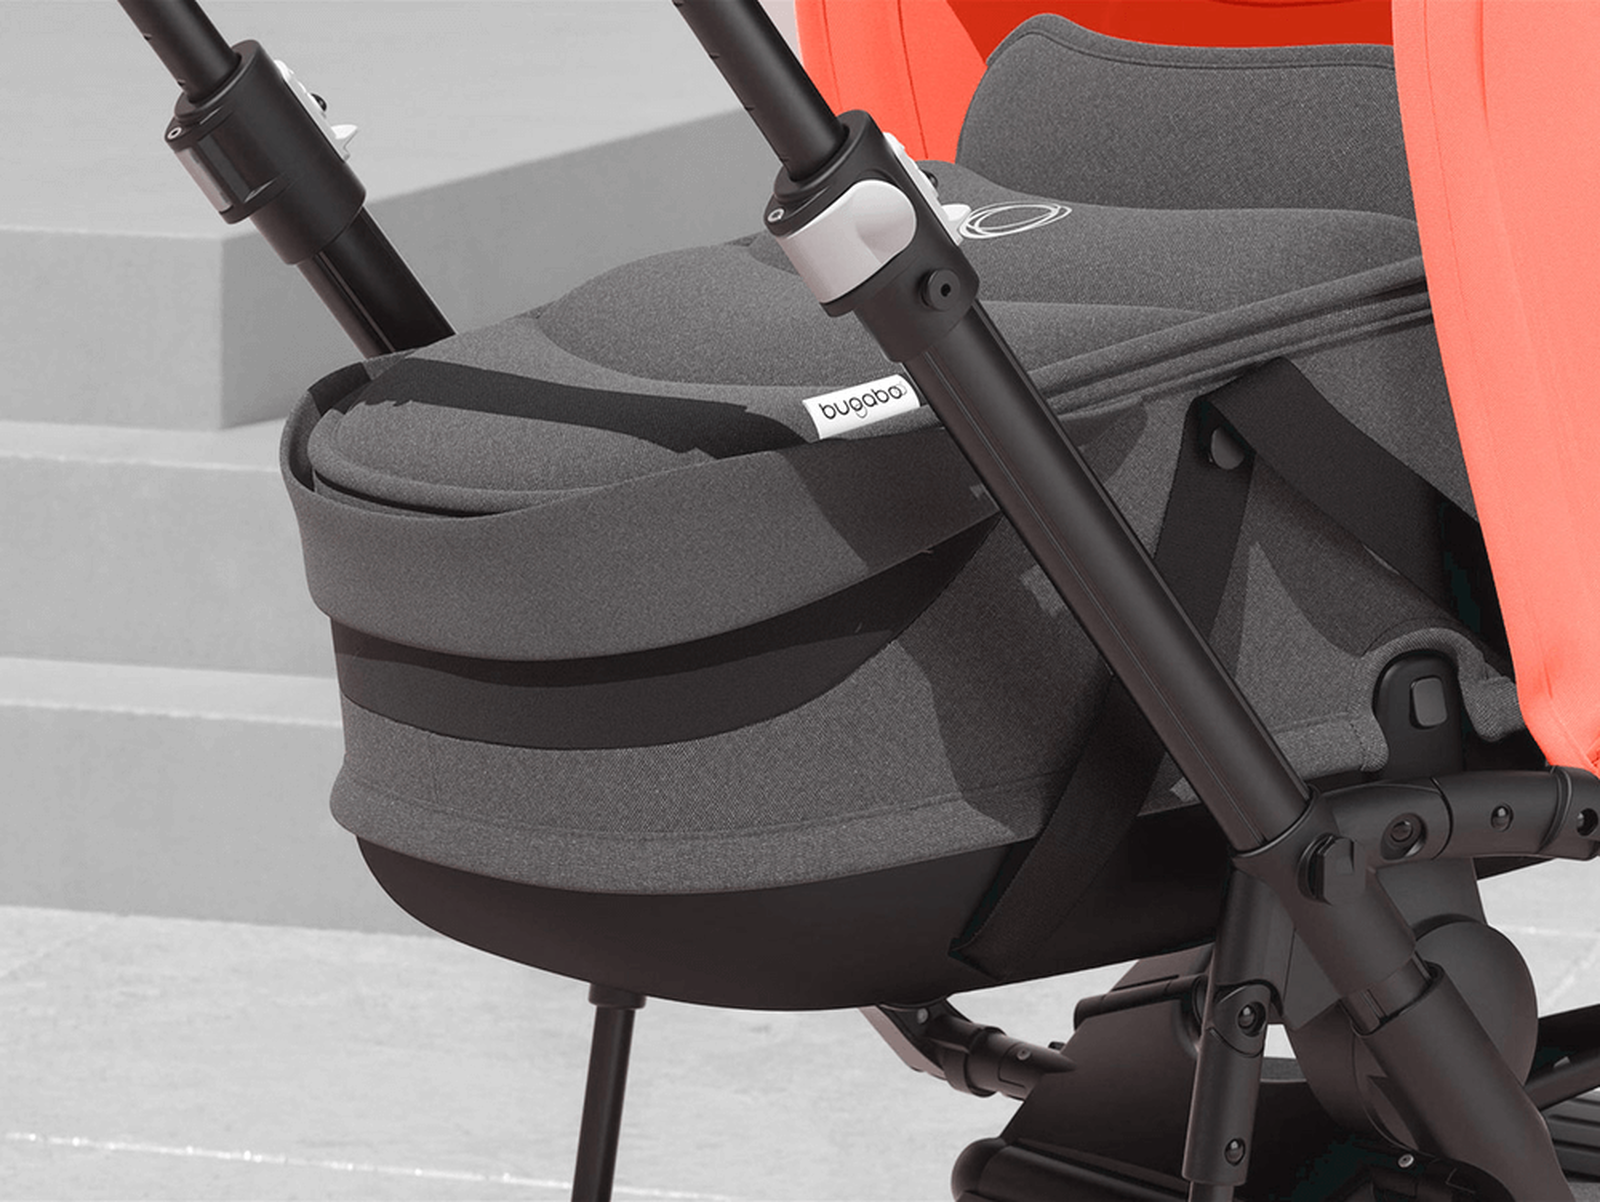 EMEA - Bee 5 seat and bassinet stroller Coral collection, black chassis